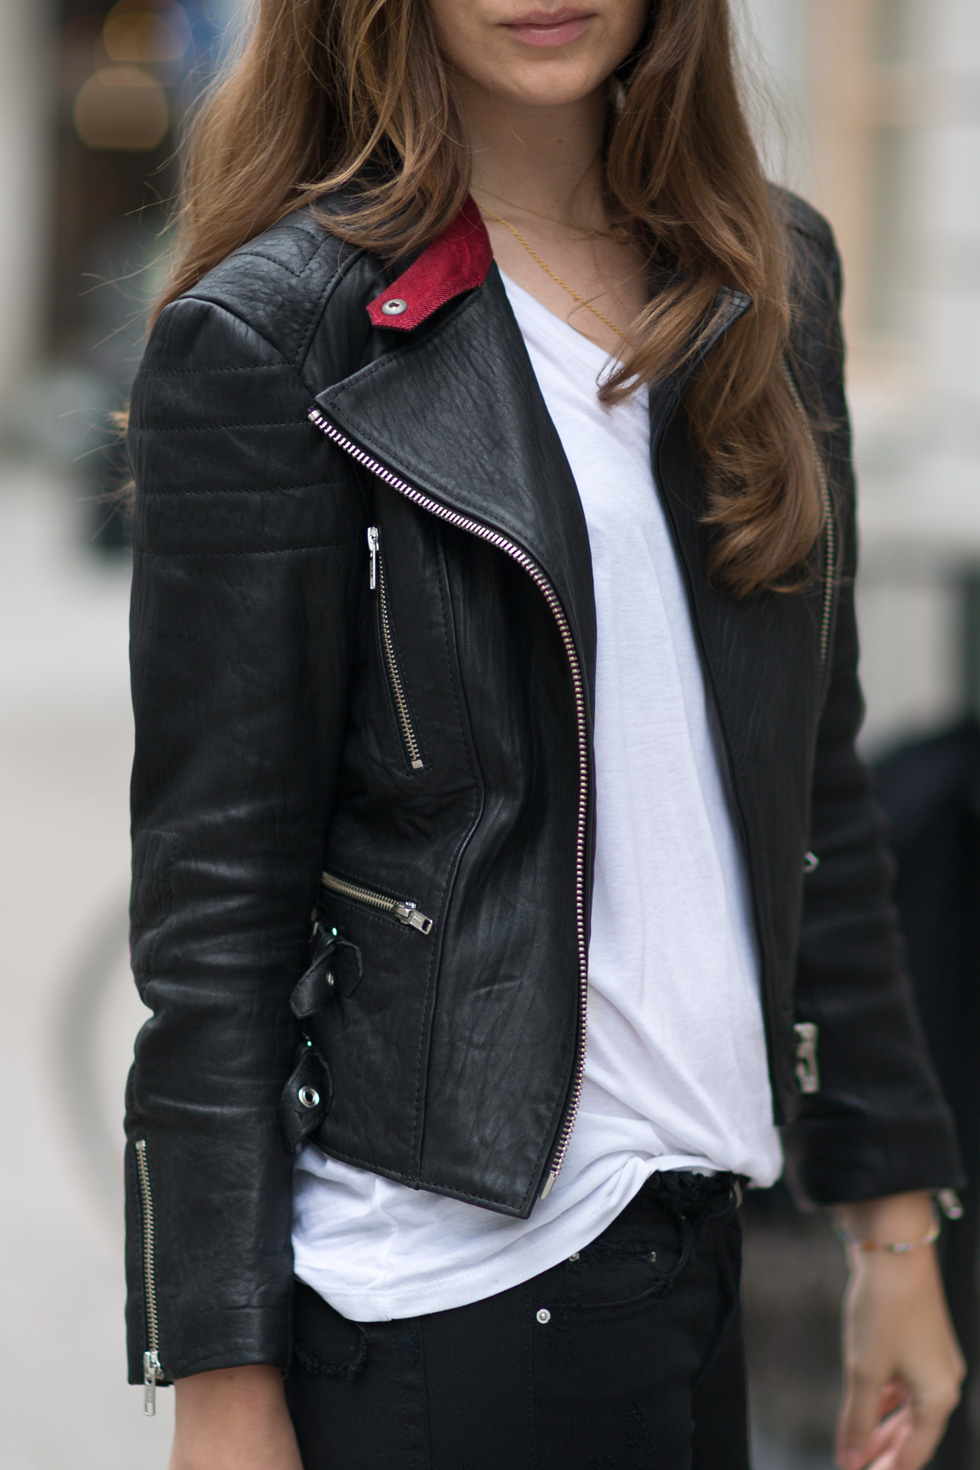 Wearing a leather jacket